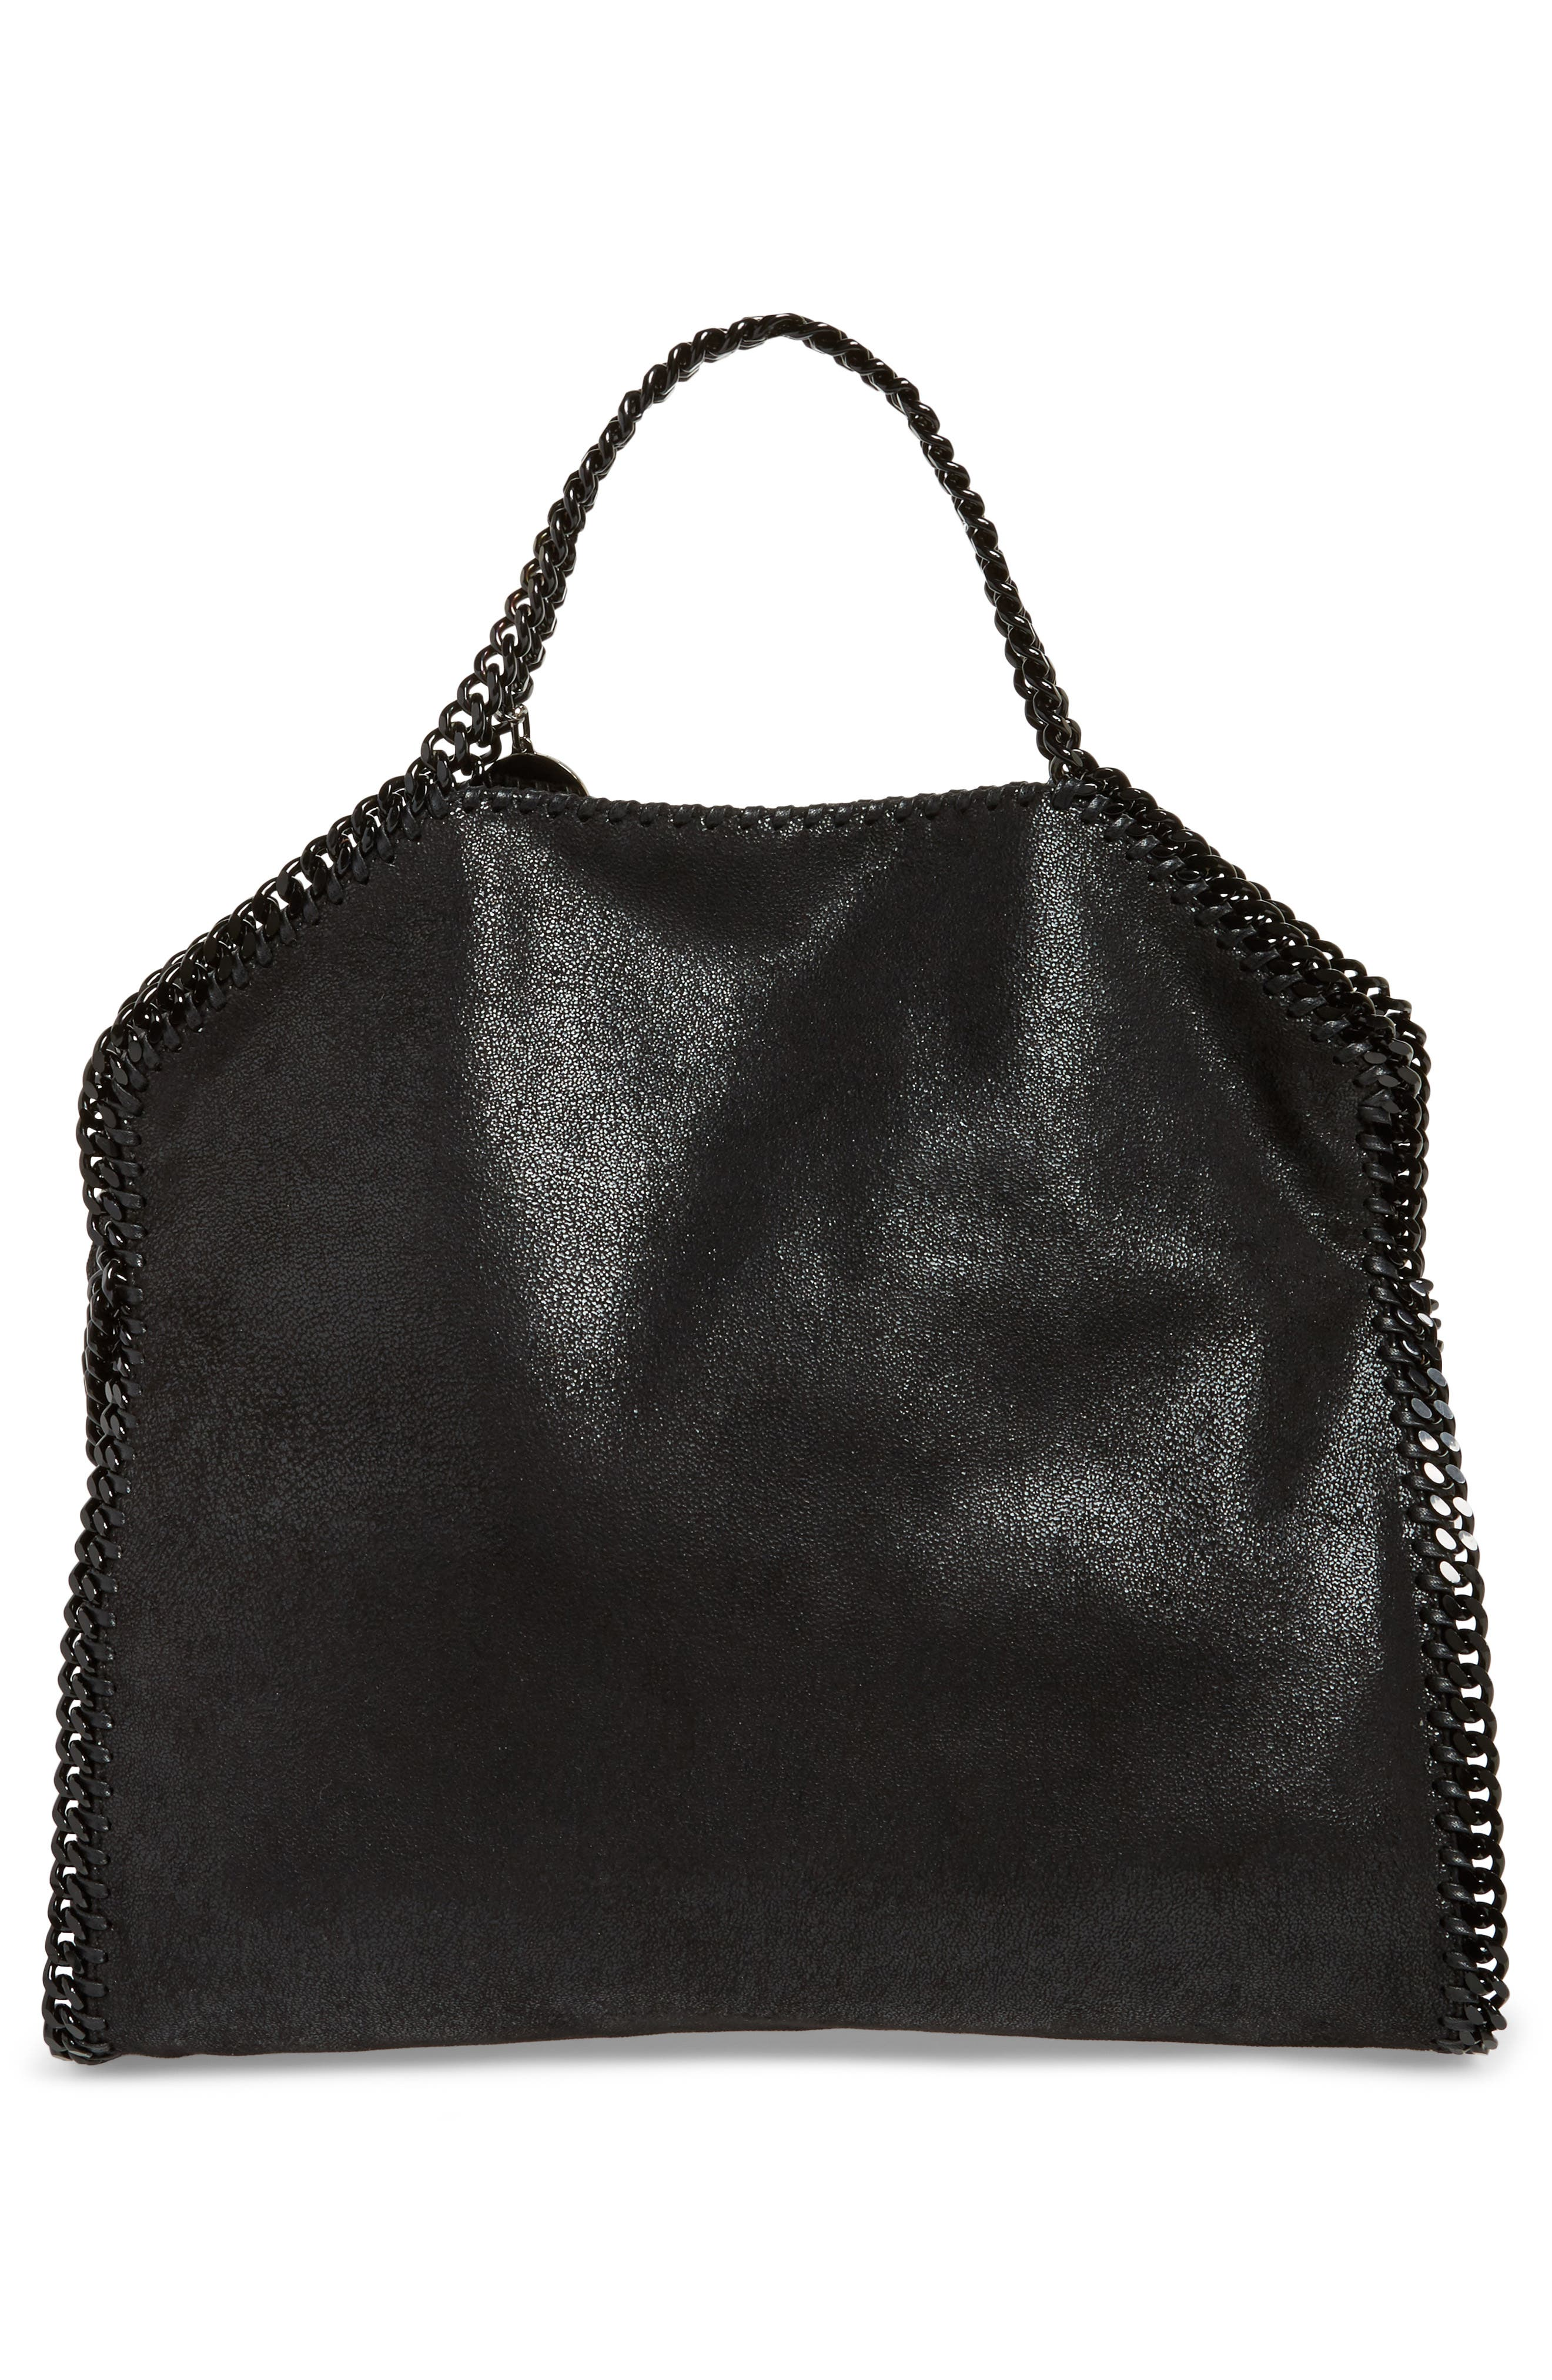 Alternate Image 3  - Stella McCartney Falabella Shaggy Deer Faux Leather Tote